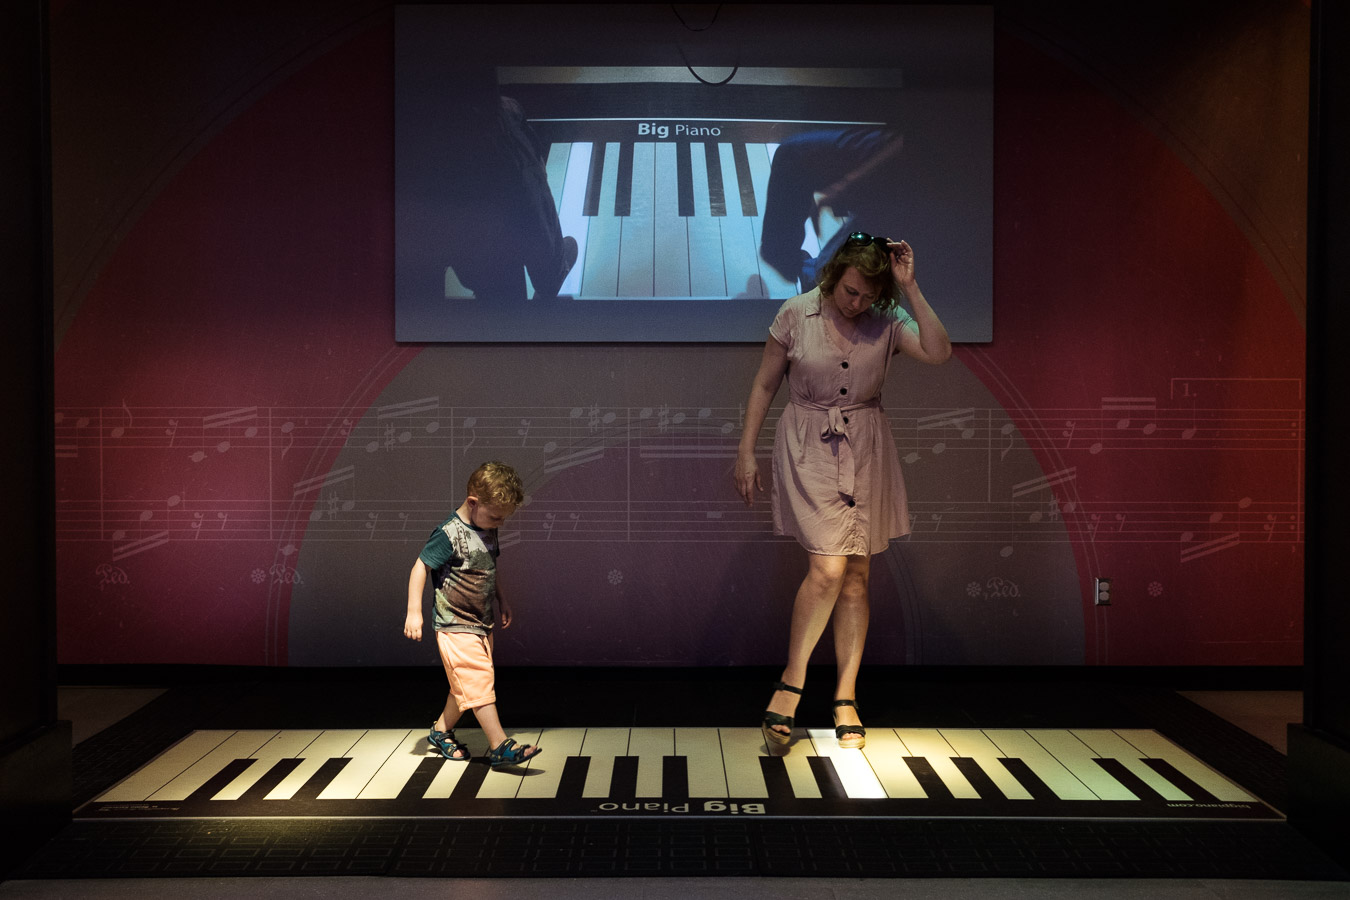 Mother and child playing giant piano keys on the floor